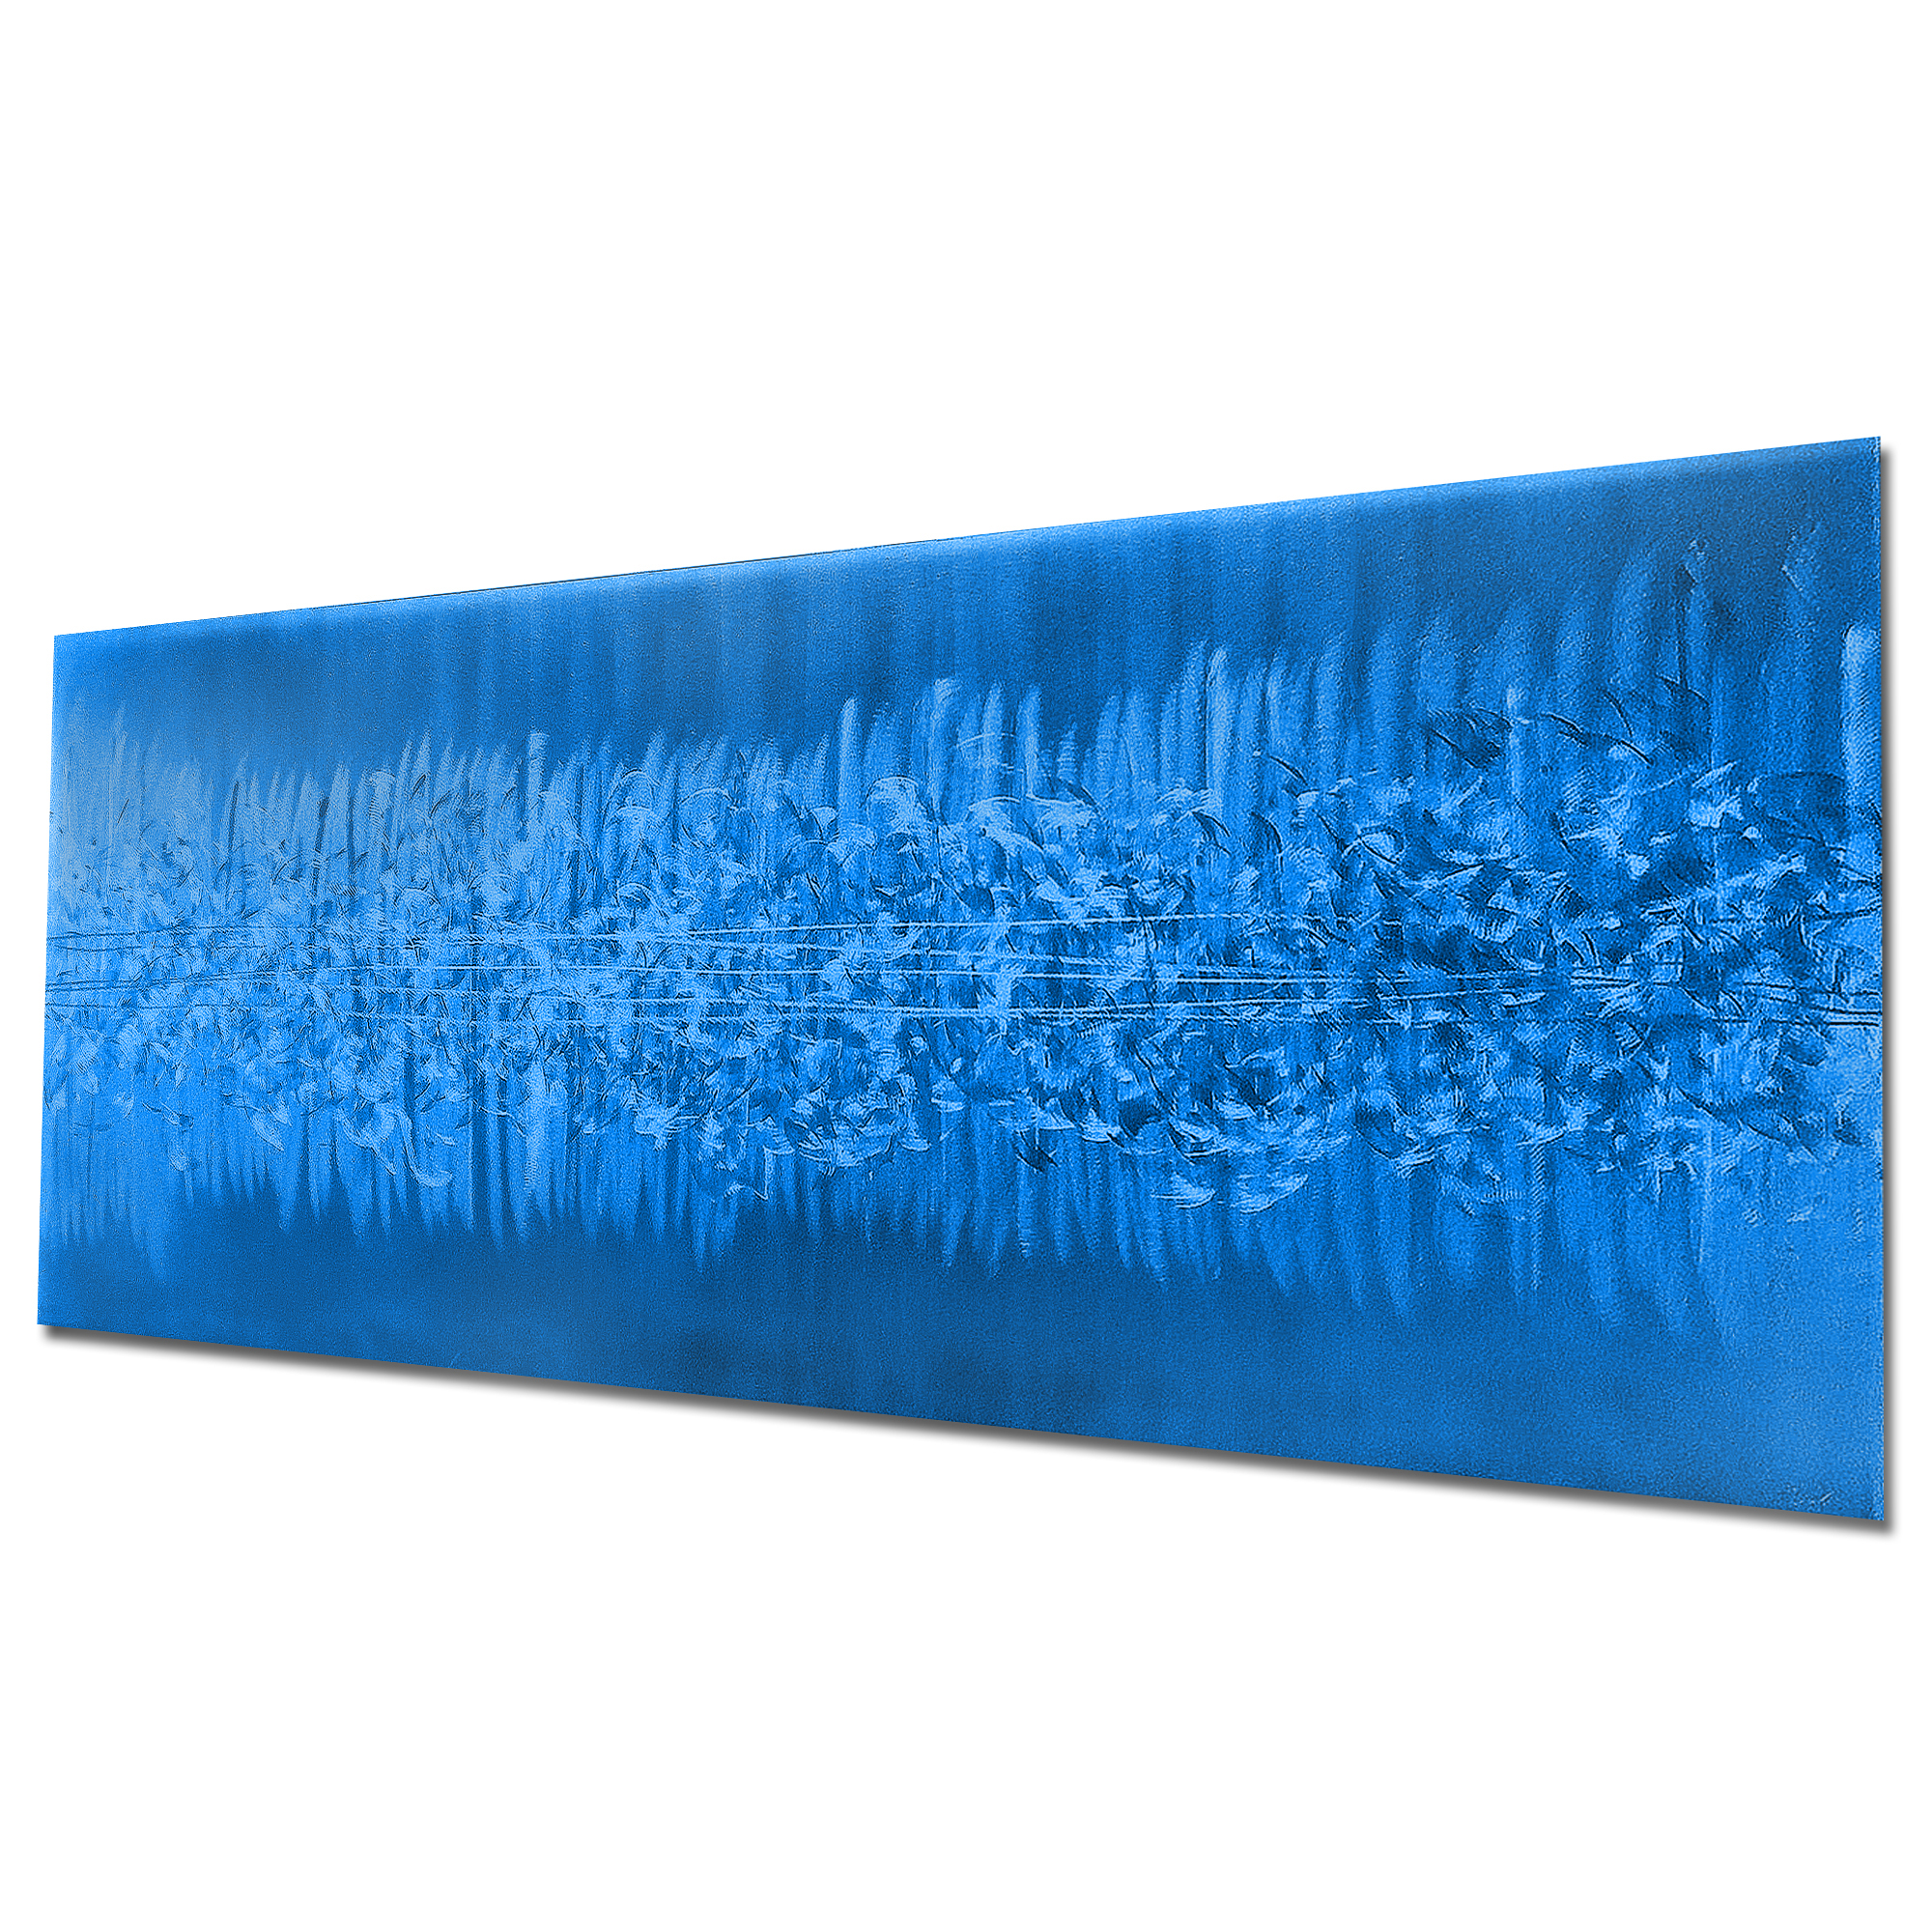 Static Blue by Helena Martin - Original Abstract Art on Ground and Painted Metal - Image 3